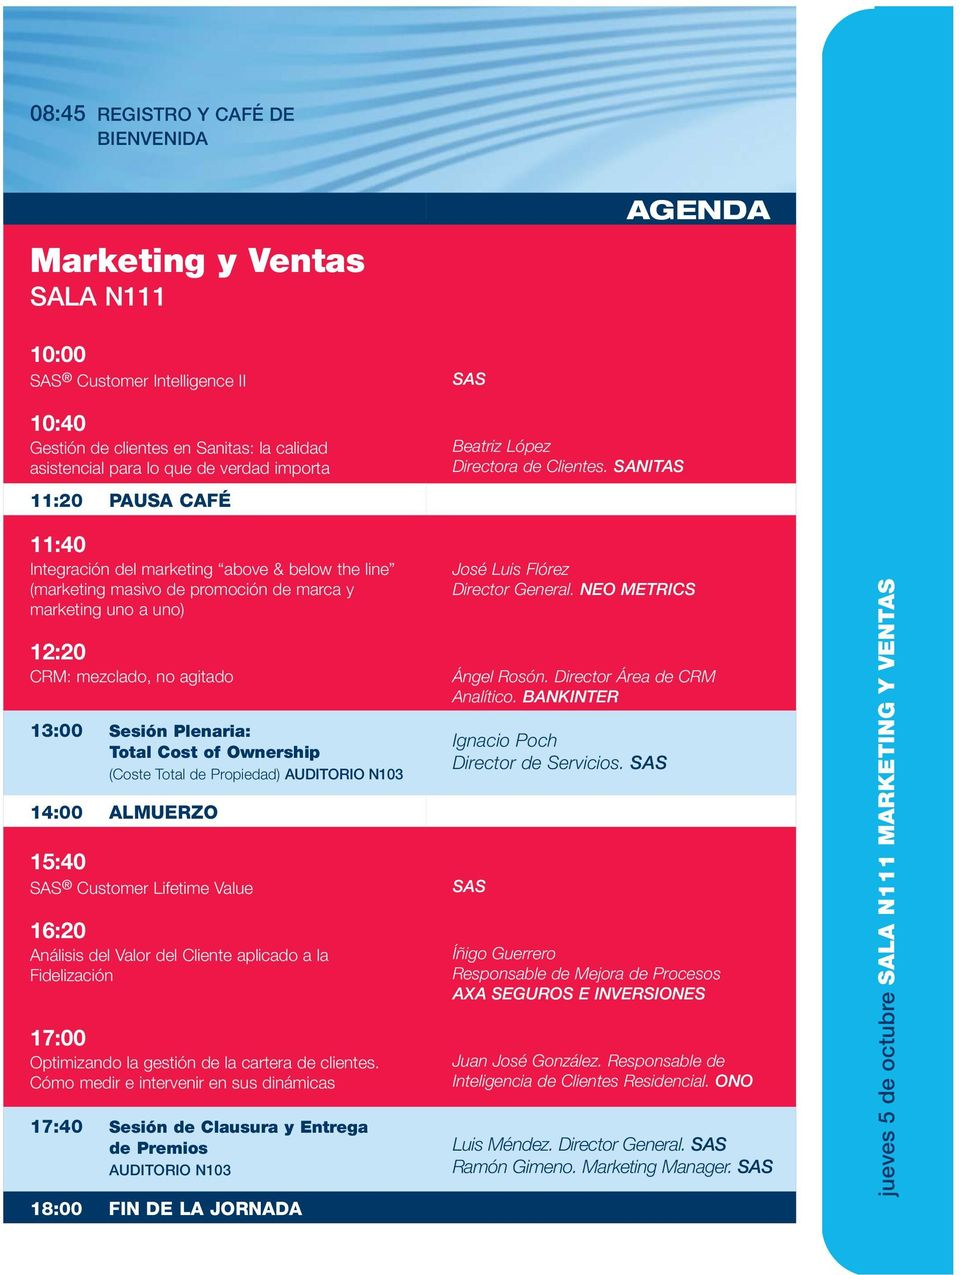 SANITAS 11:40 Integración del marketing above & below the line (marketing masivo de promoción de marca y marketing uno a uno) 12:20 CRM: mezclado, no agitado 13:00 Sesión Plenaria: Total Cost of